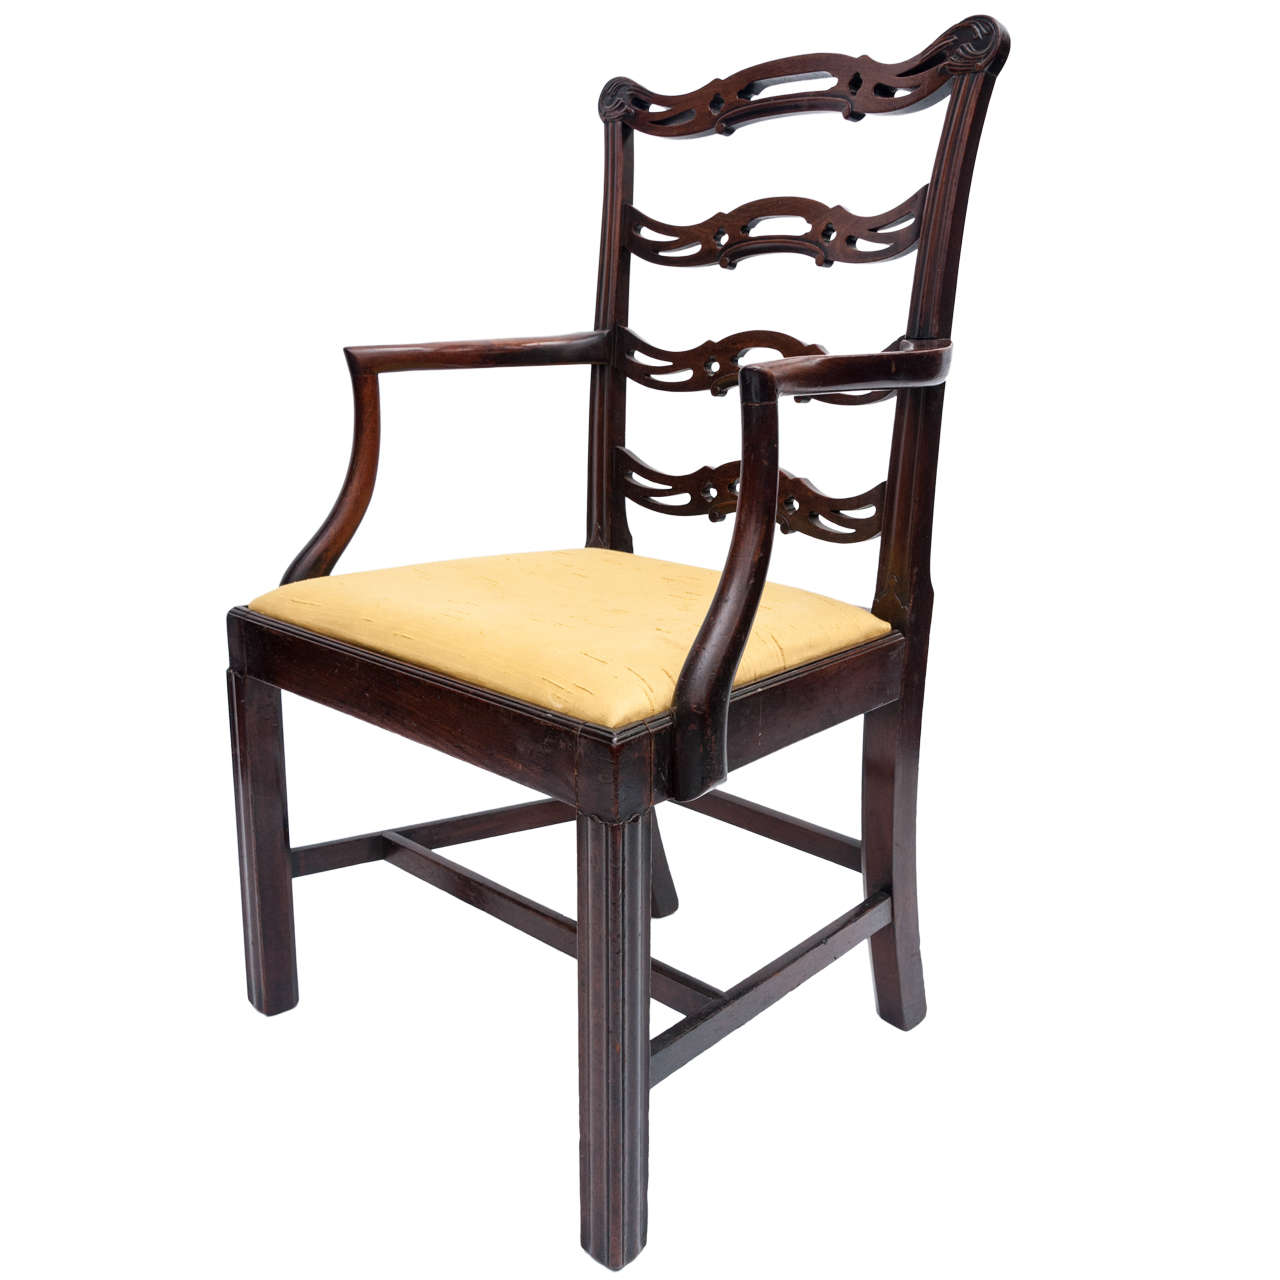 Authentic chippendale chairs - Georgian Mahogany Chippendale Elbow Chair